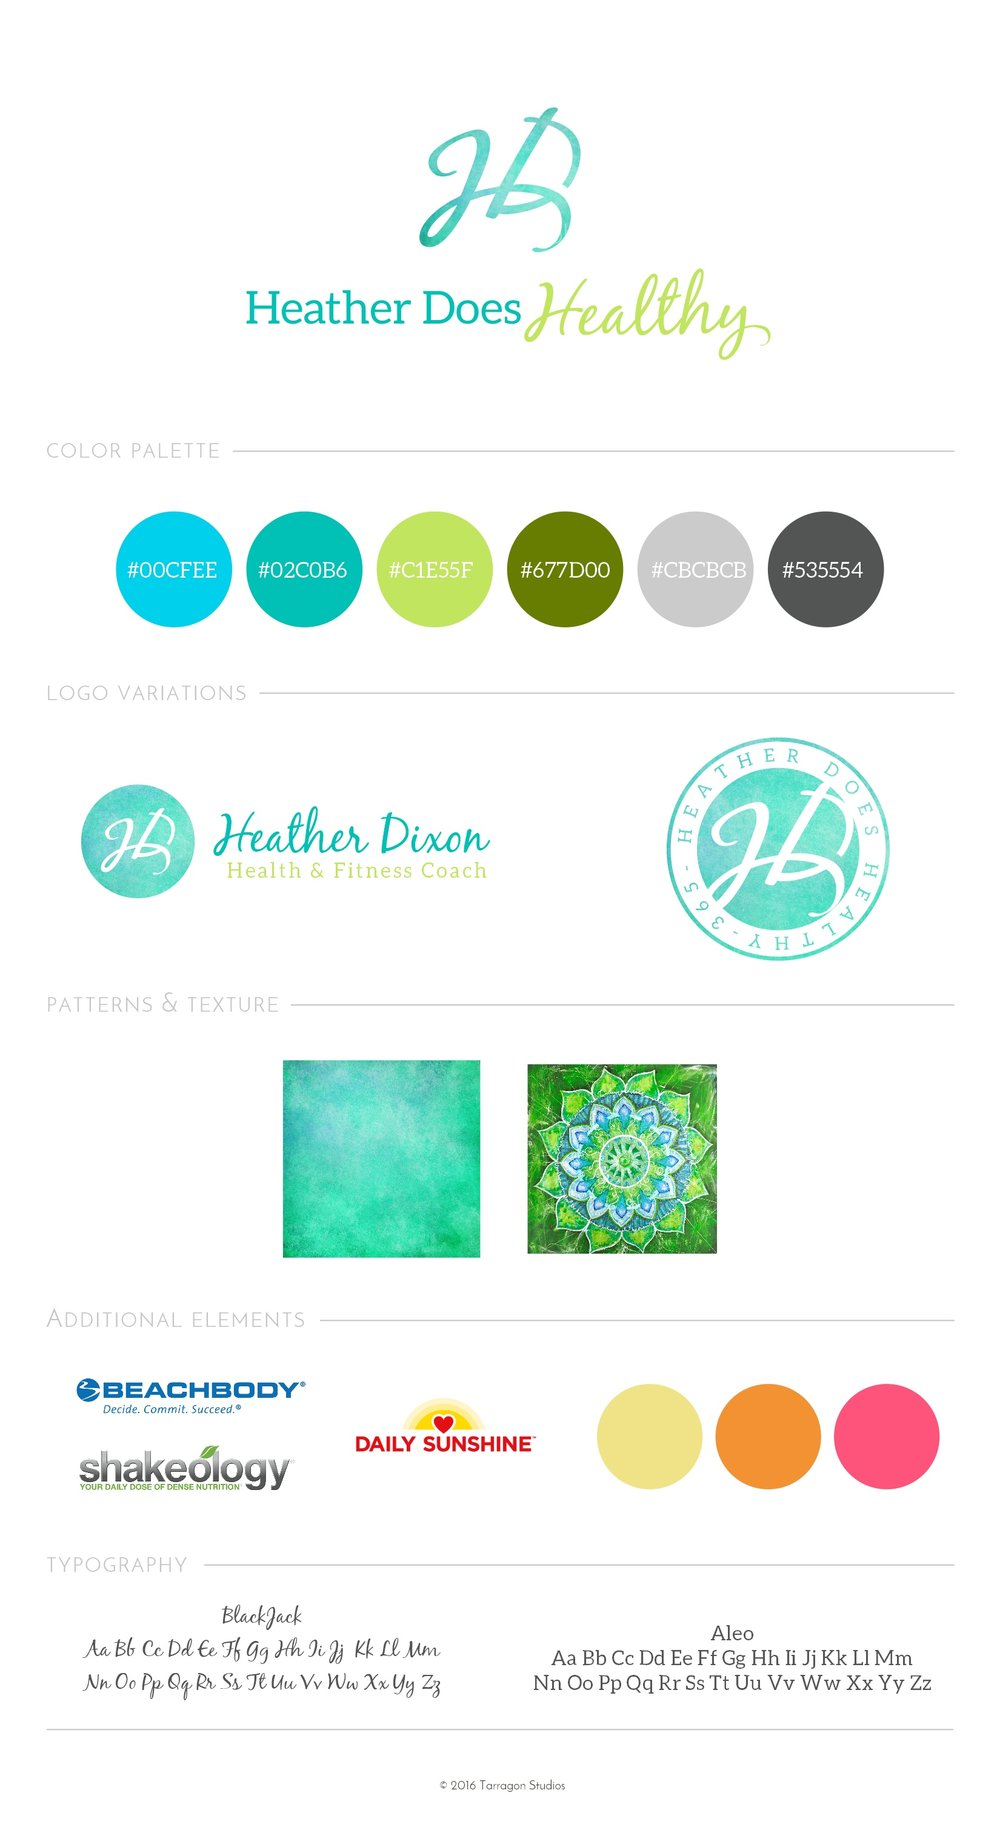 Heather Does Healthy Style Guide by Tarragon Studios